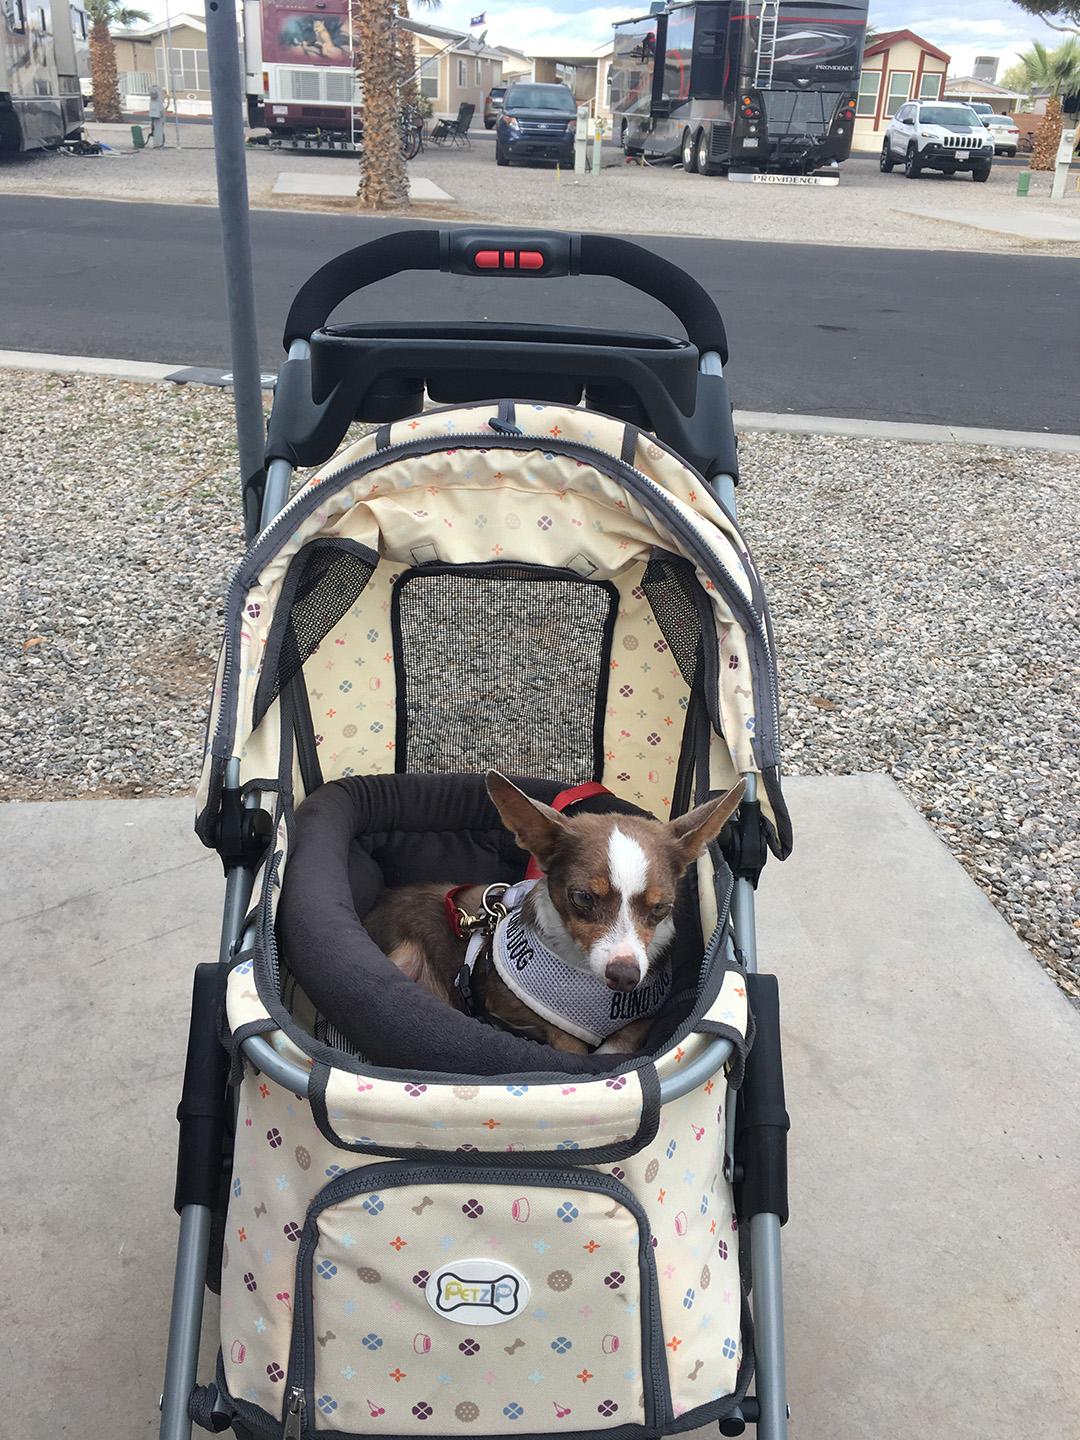 Stimpy in his stroller